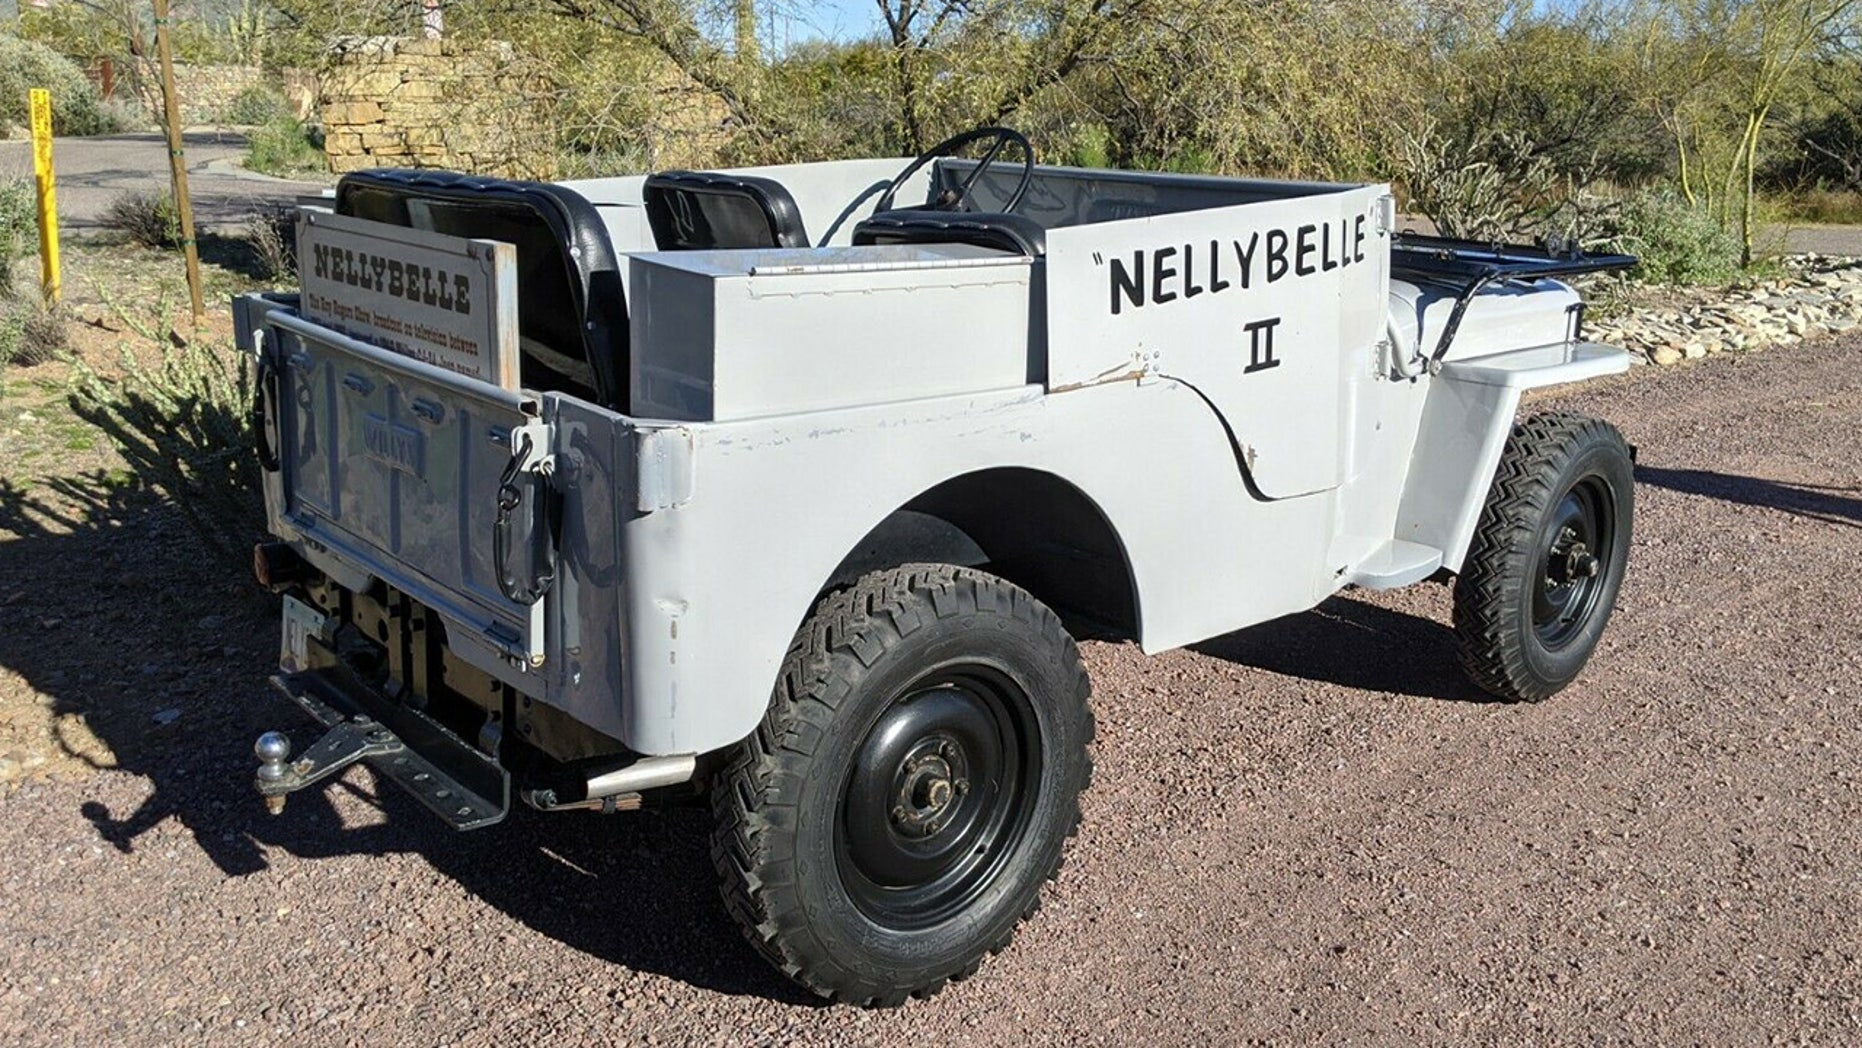 Roy Rogers classic Jeep CJ Nellybelle II